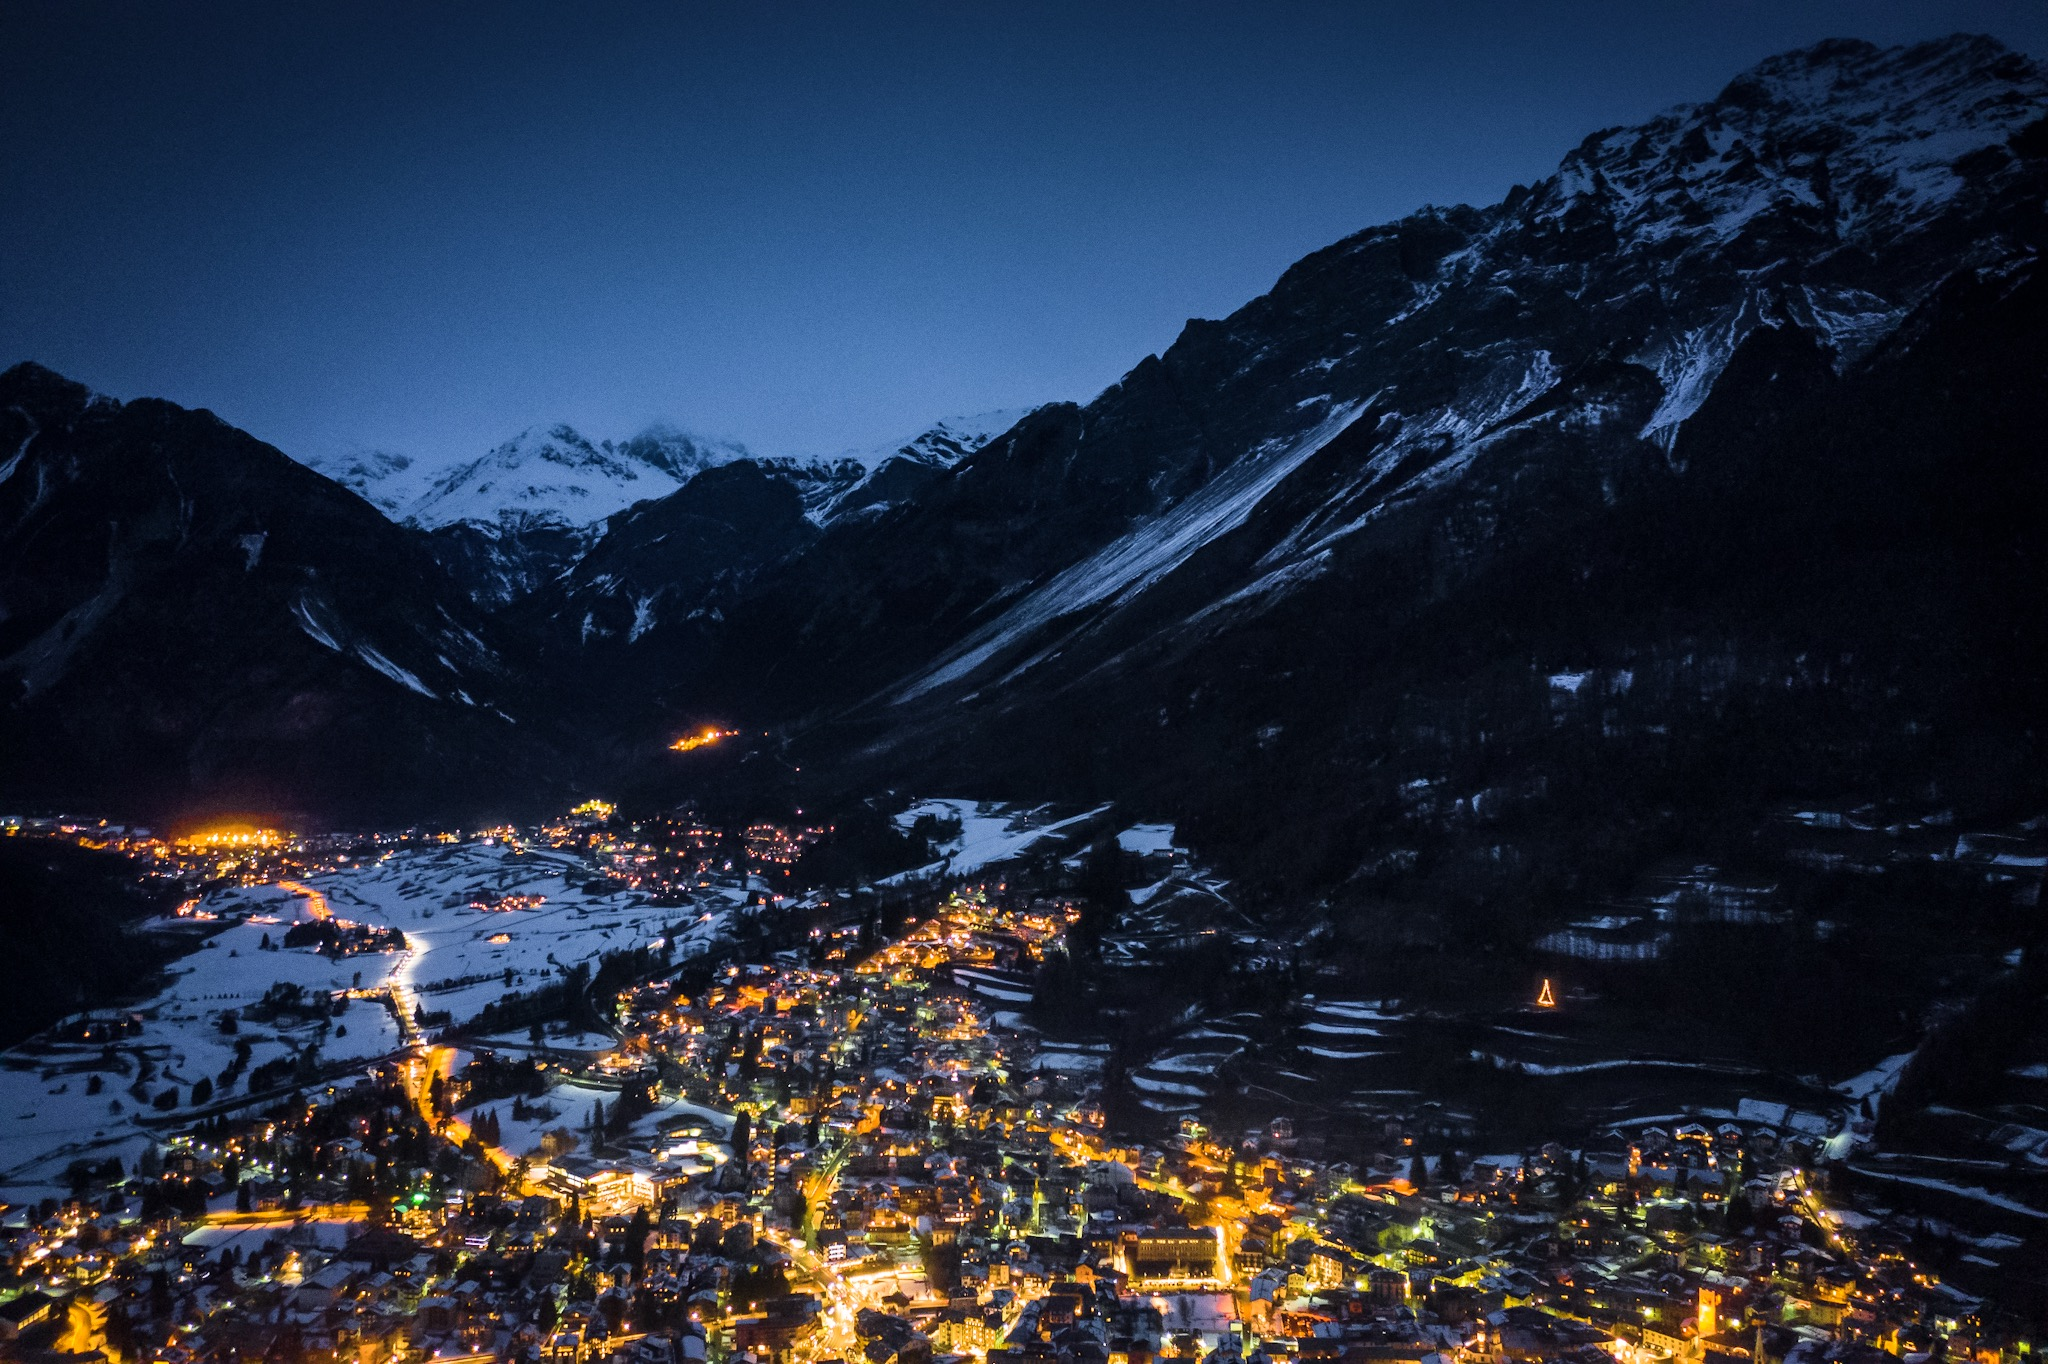 View of Bormio at night from the chalet lounge room.